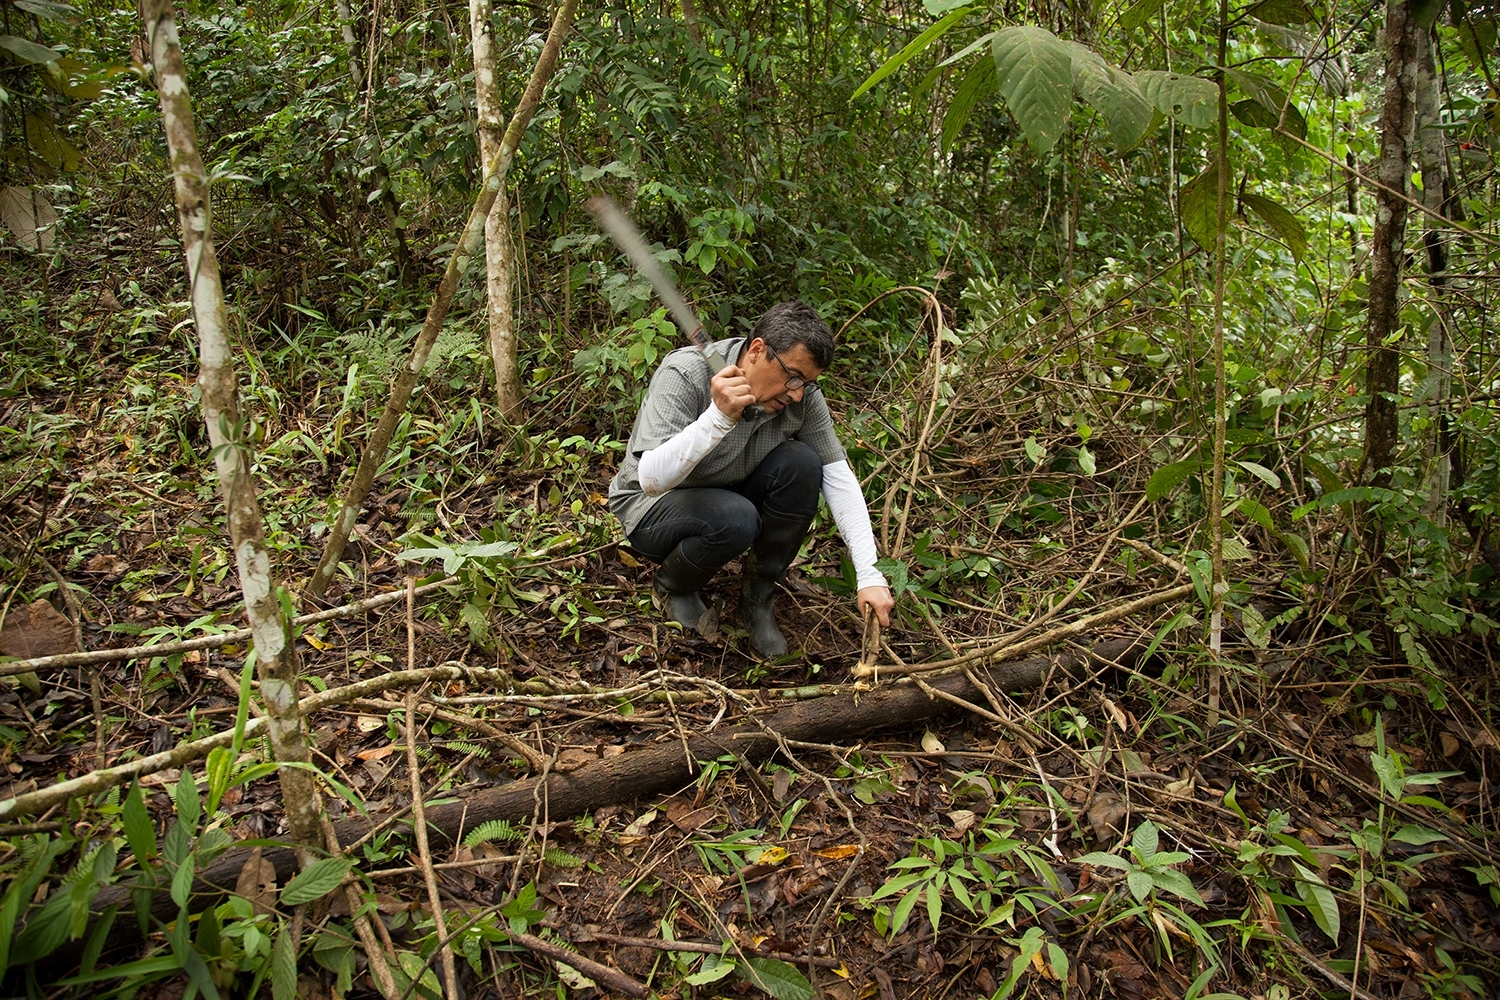 TZ'IJK.0.   Collecting angarilla wood in the rainforest to build the geodesia structure.